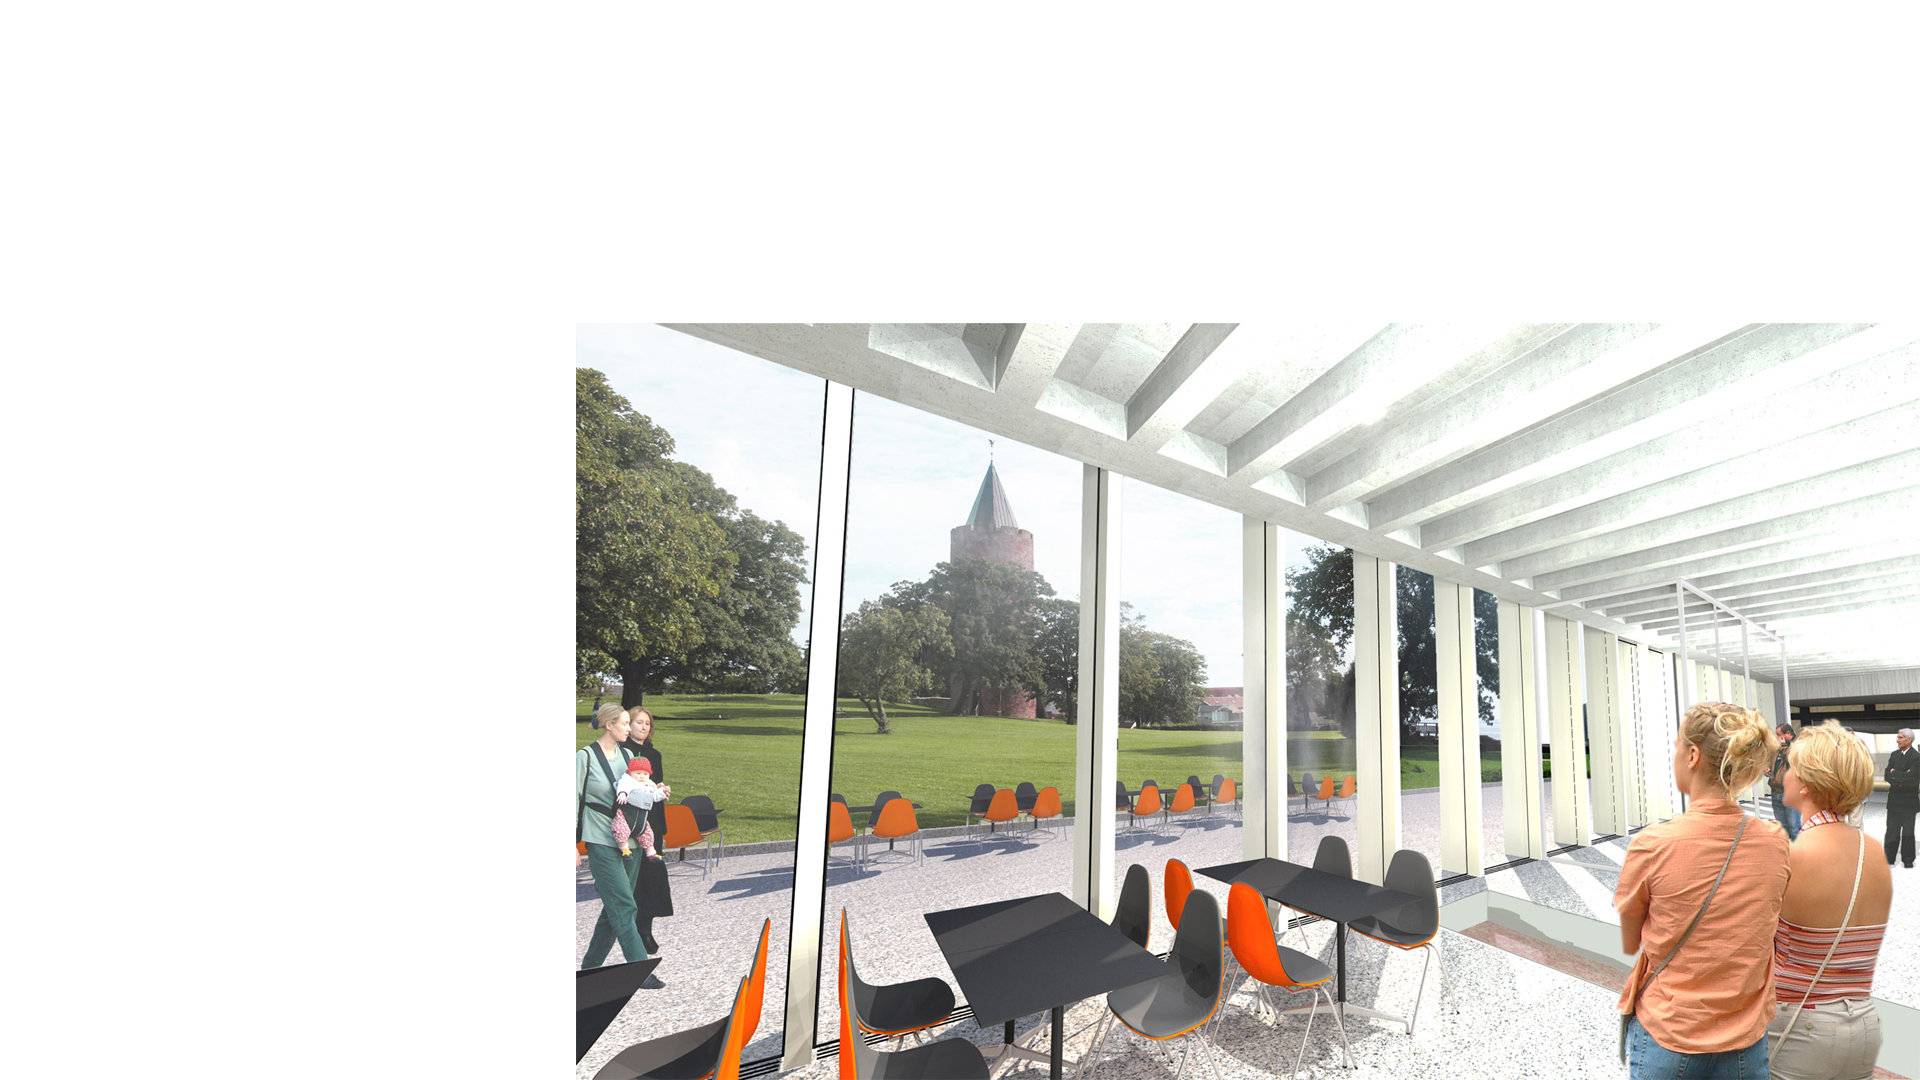 Rendering of the interior of the entrance foyer and restaurant at the proposed Vordingborg Museum